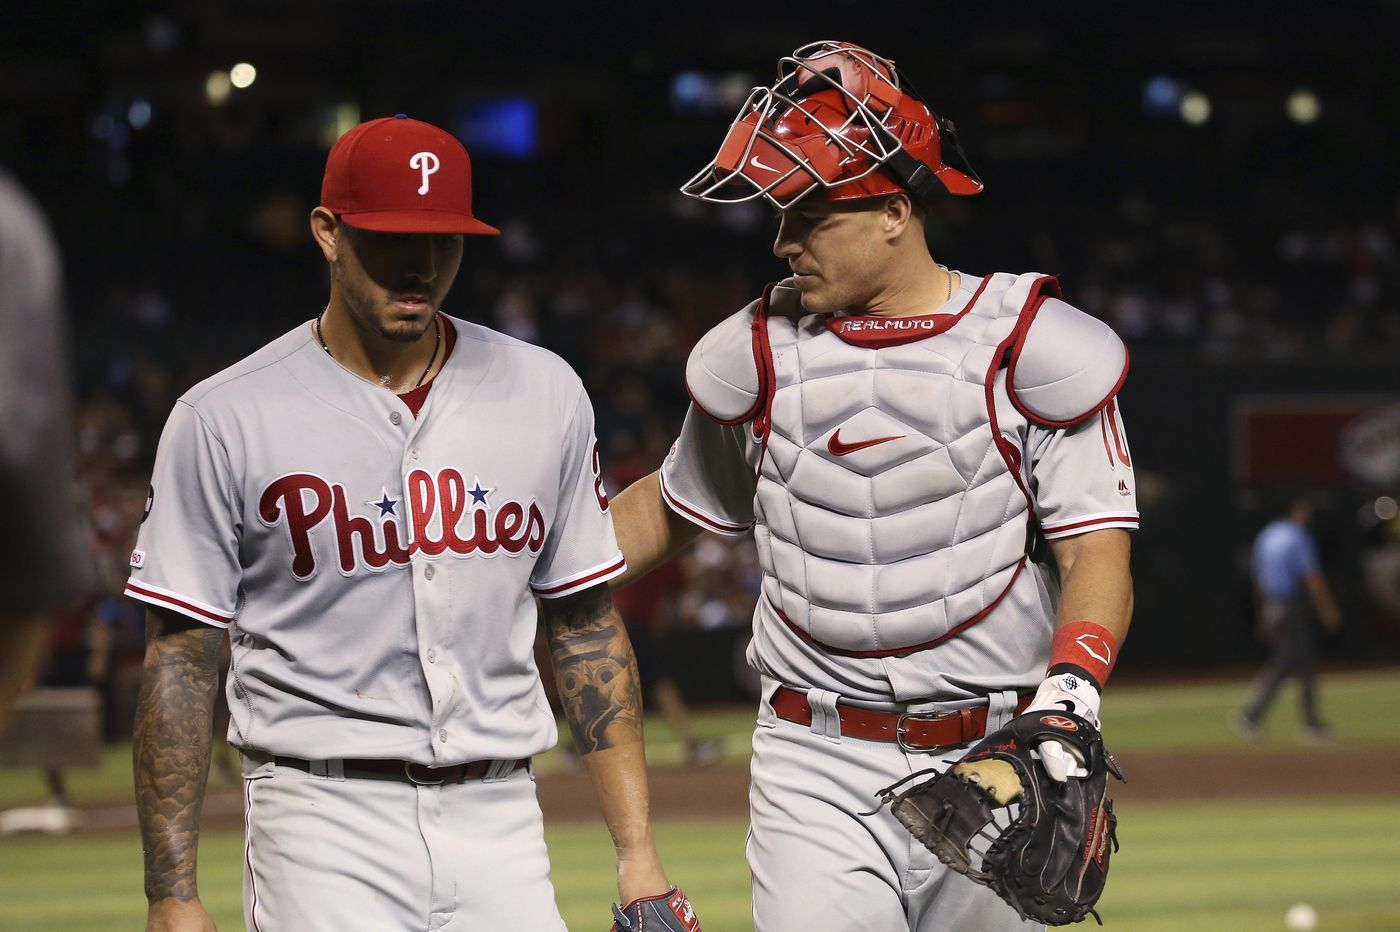 Phillies get a much-needed pitching gem from Vince Velasquez | Extra Innings